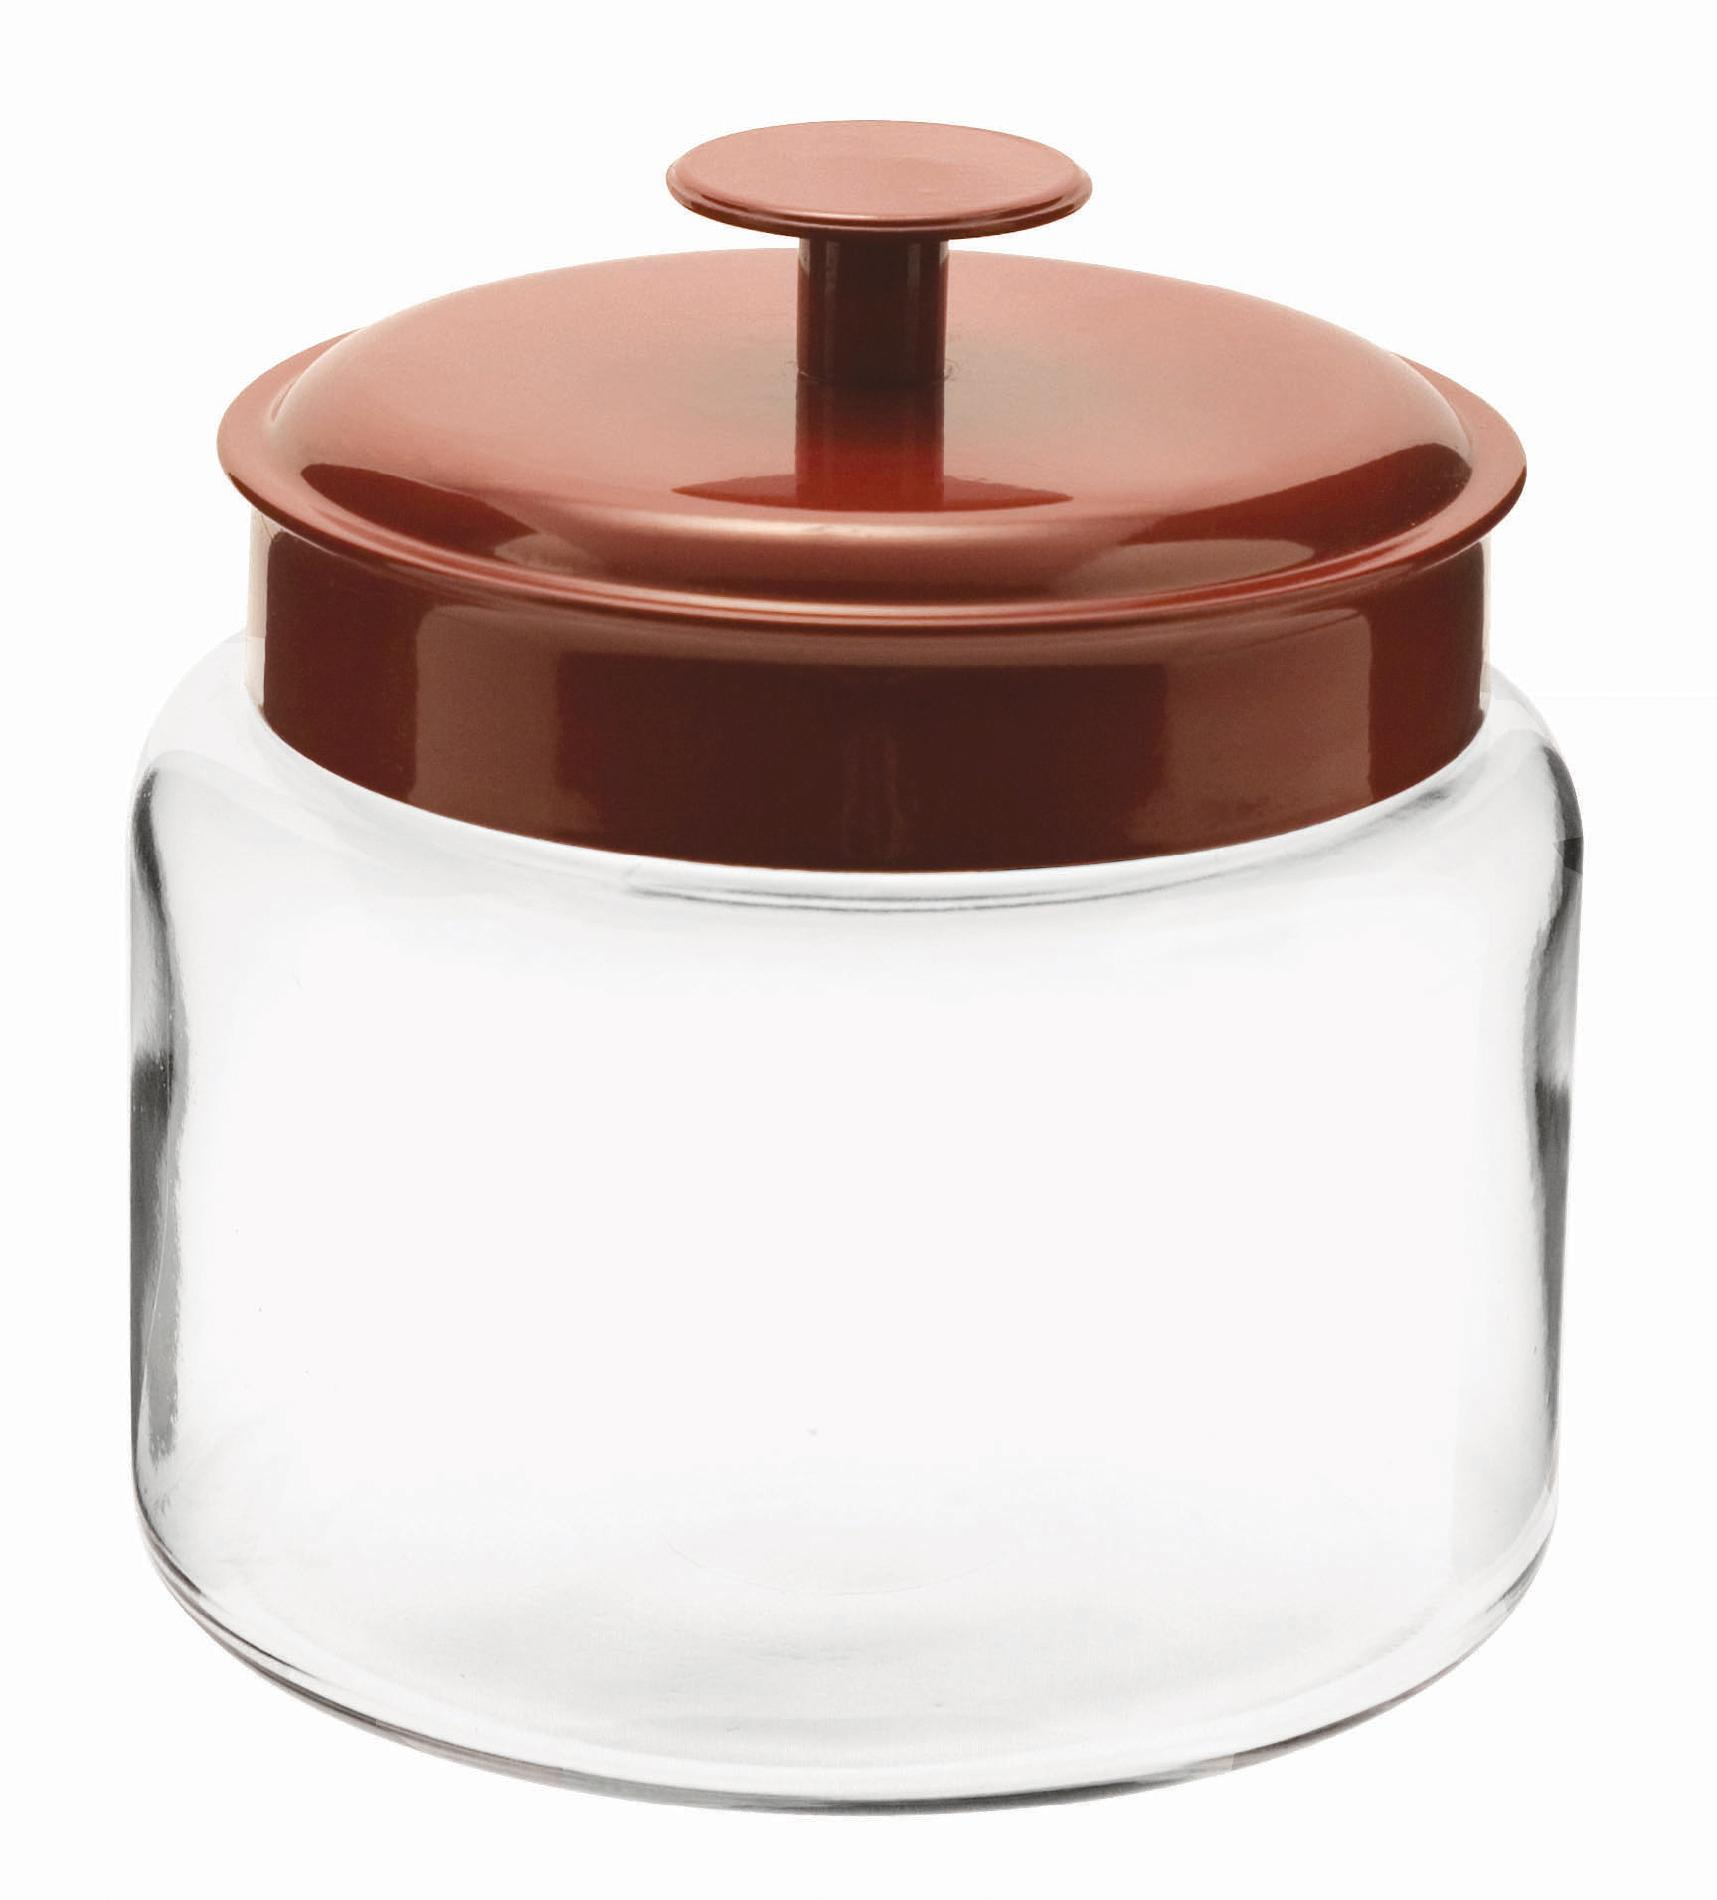 Anchor Hocking Montana Glass Jar - Red Aluminum Lid, 48 oz PartNumber: 011W096515211001P KsnValue: 96515211 MfgPartNumber: 95582